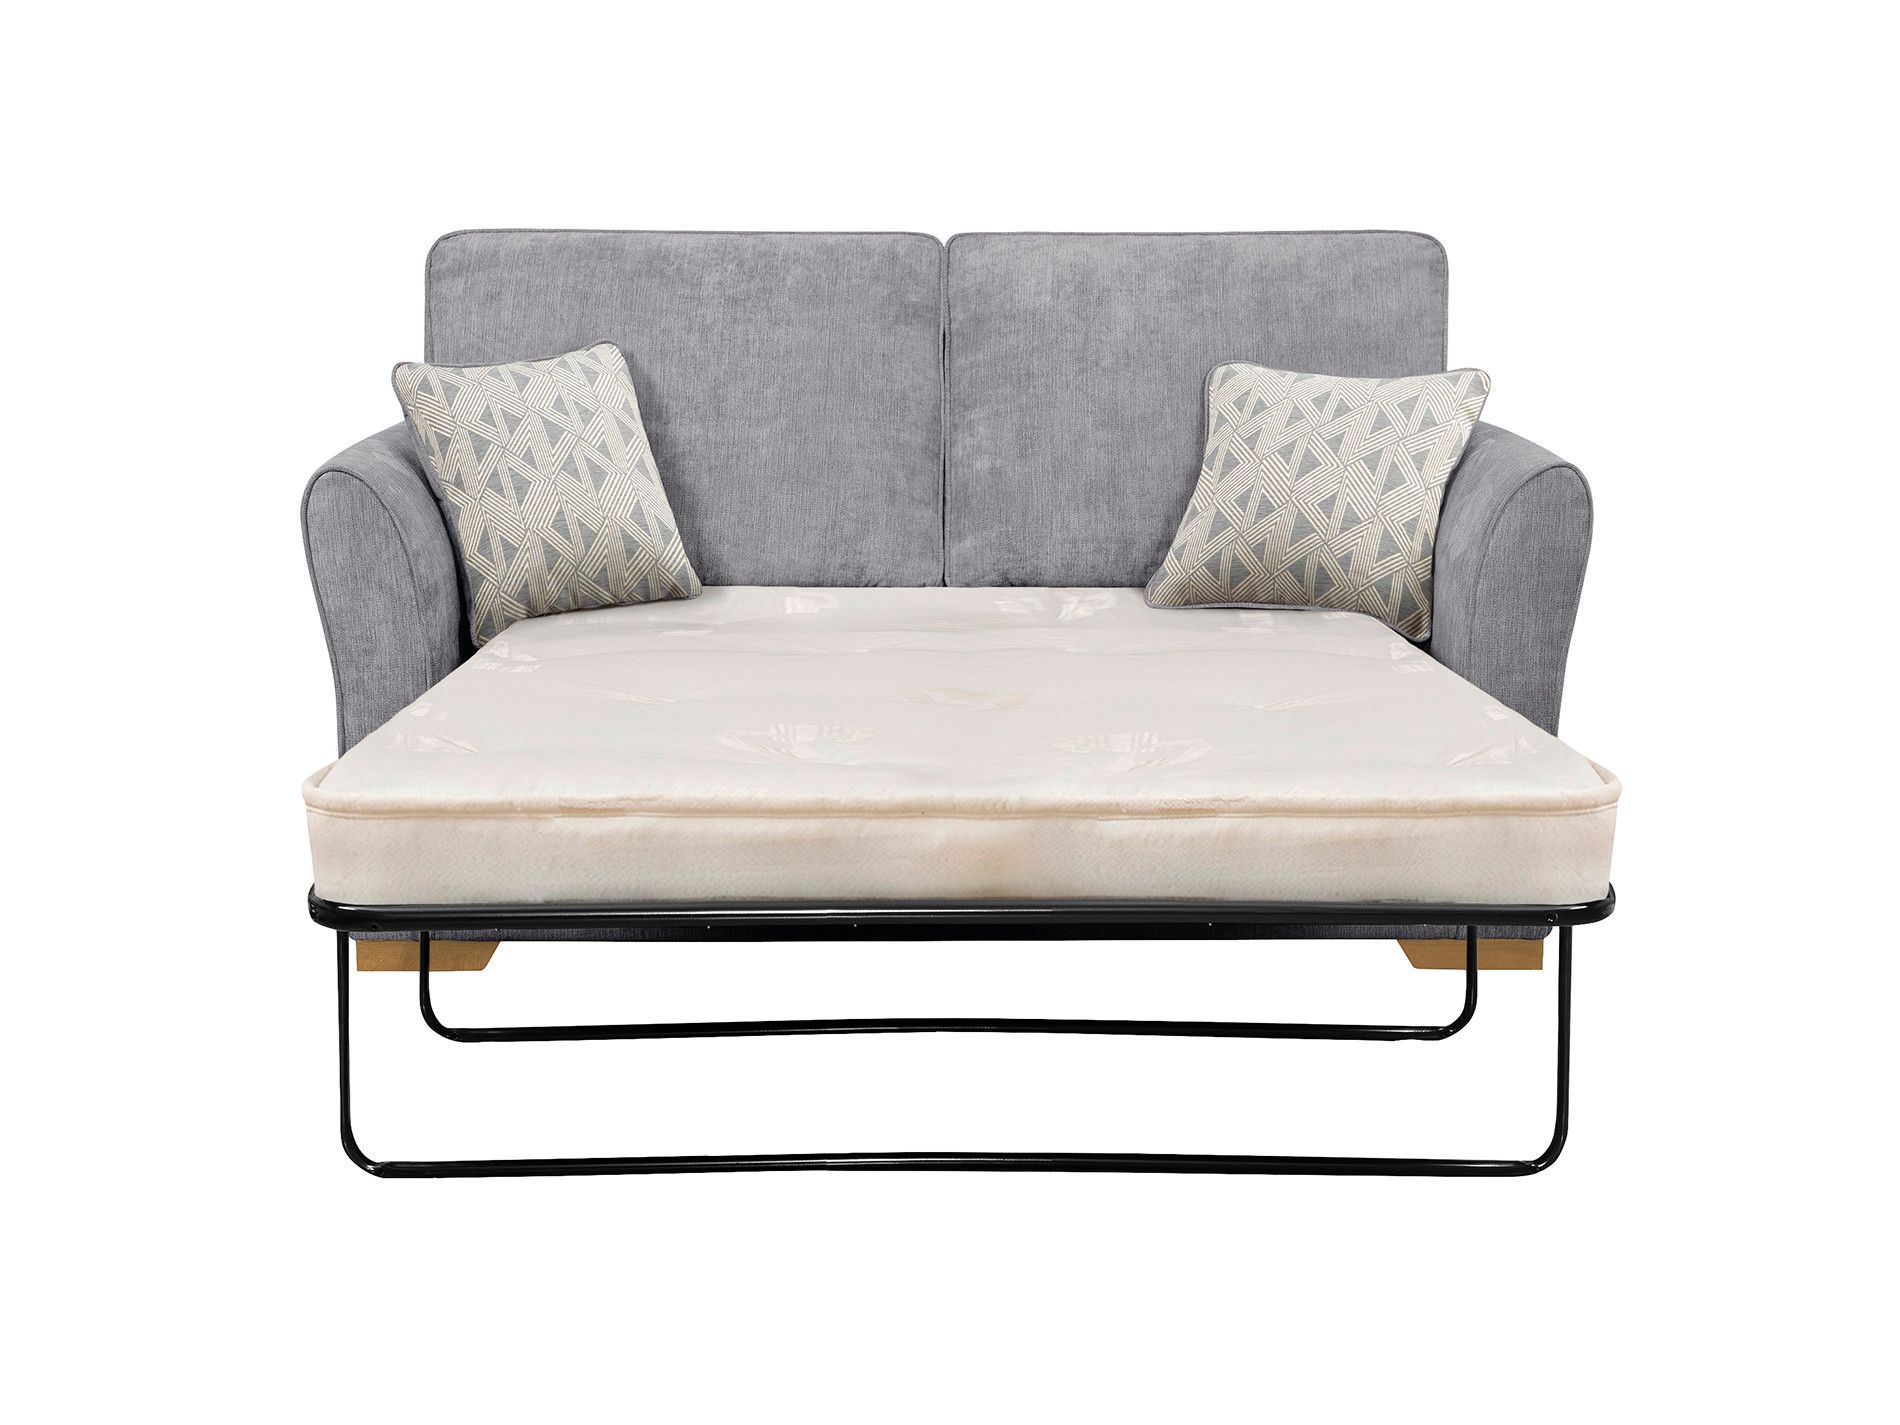 Pewter Sofa Bed Knislinge Review Leather Jasmine 2 Seater With Deluxe Mattress In Cosmo